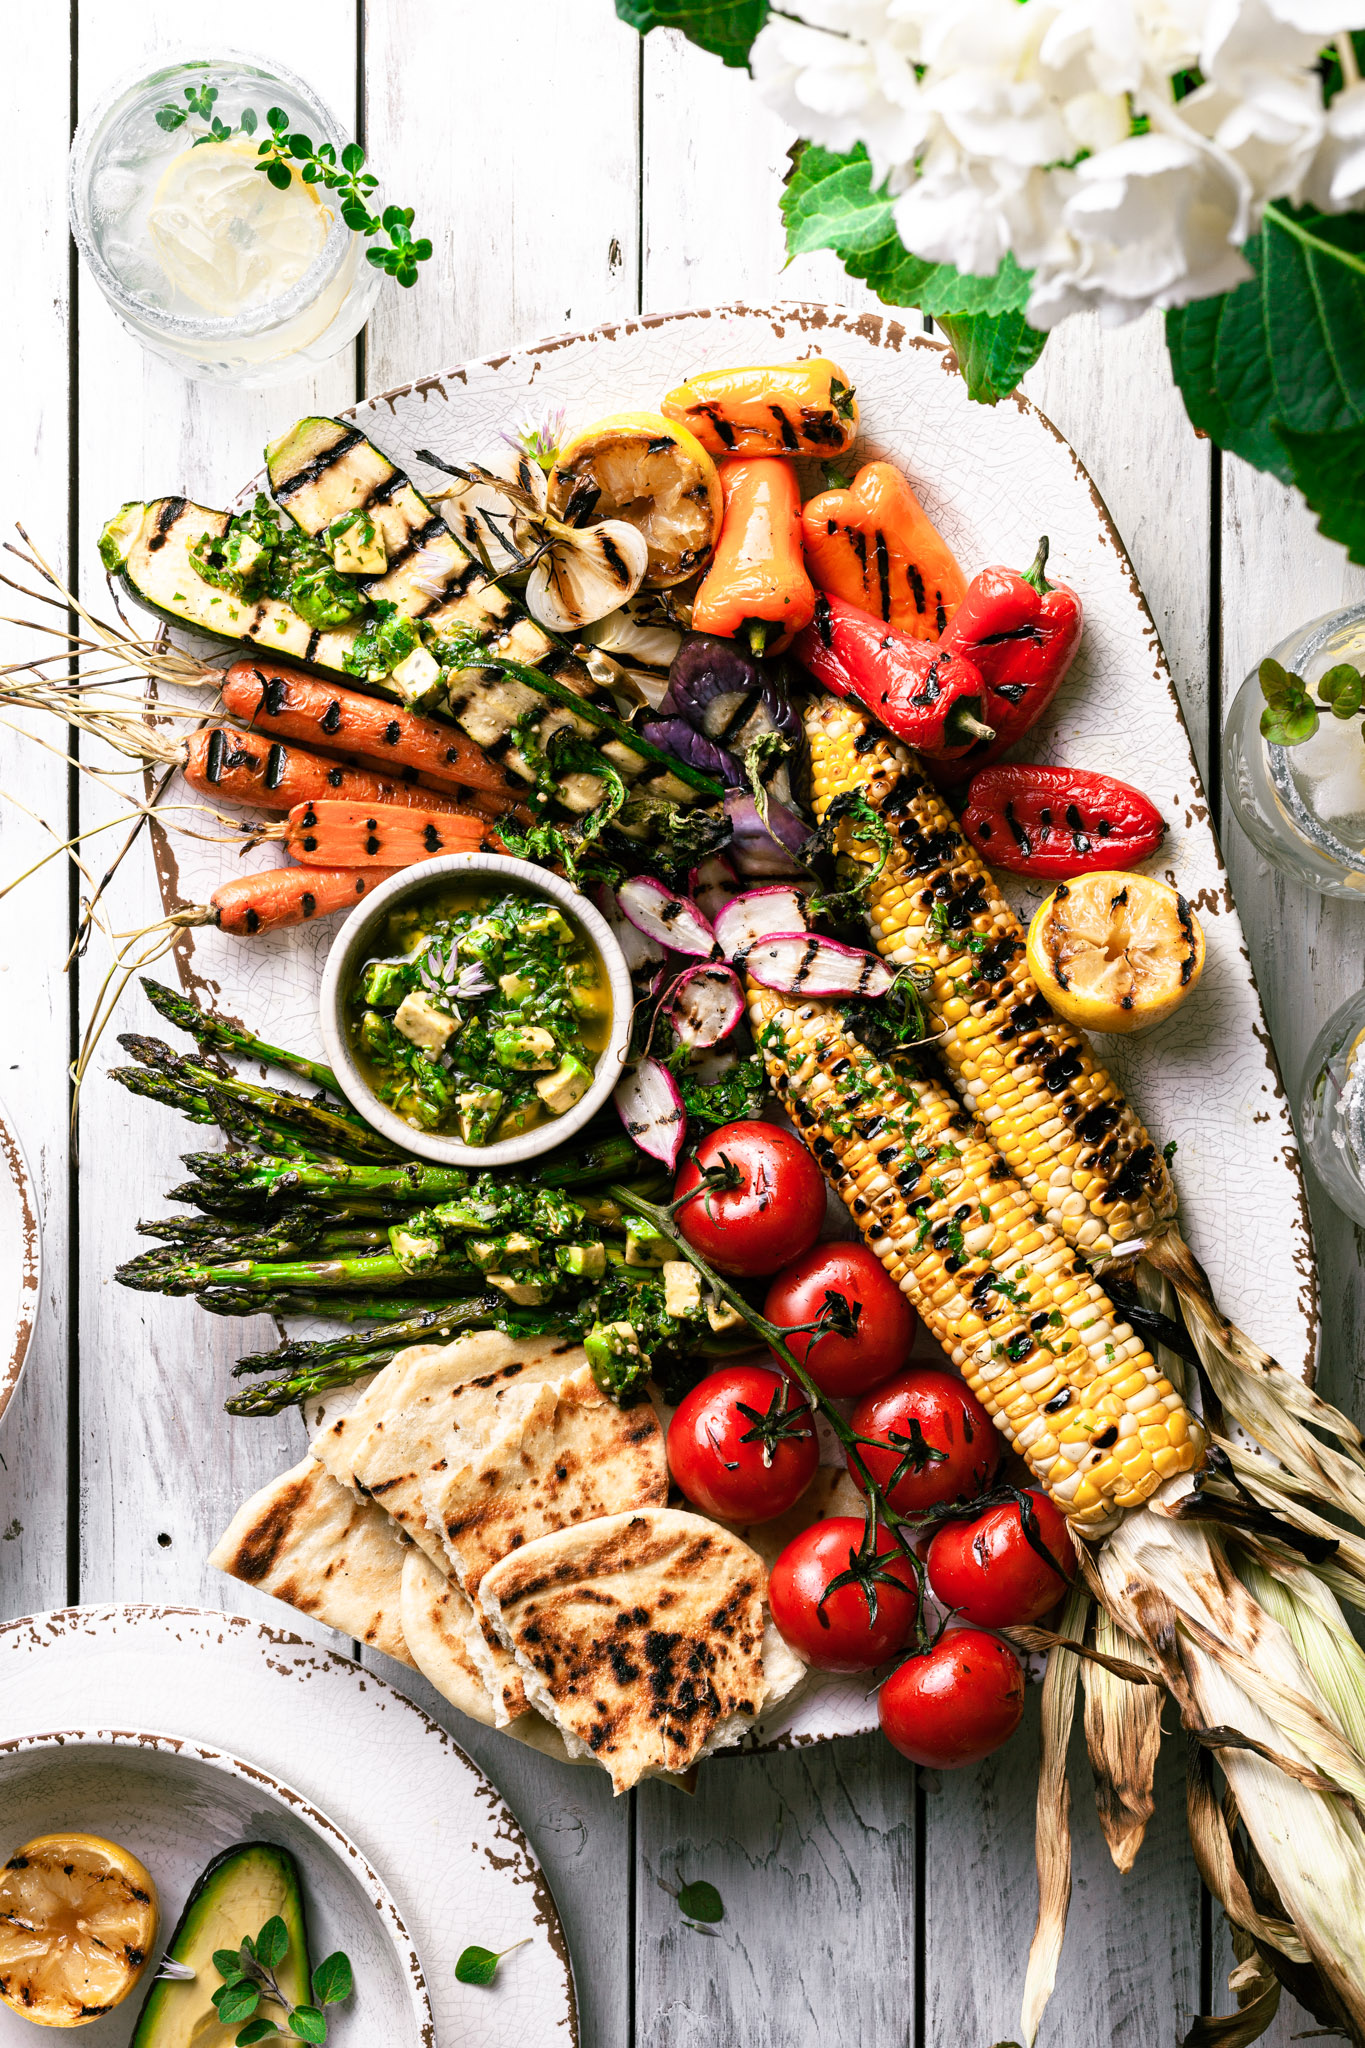 A white platter filled with grilled vegetables covered in avocado chimichurri sauce.